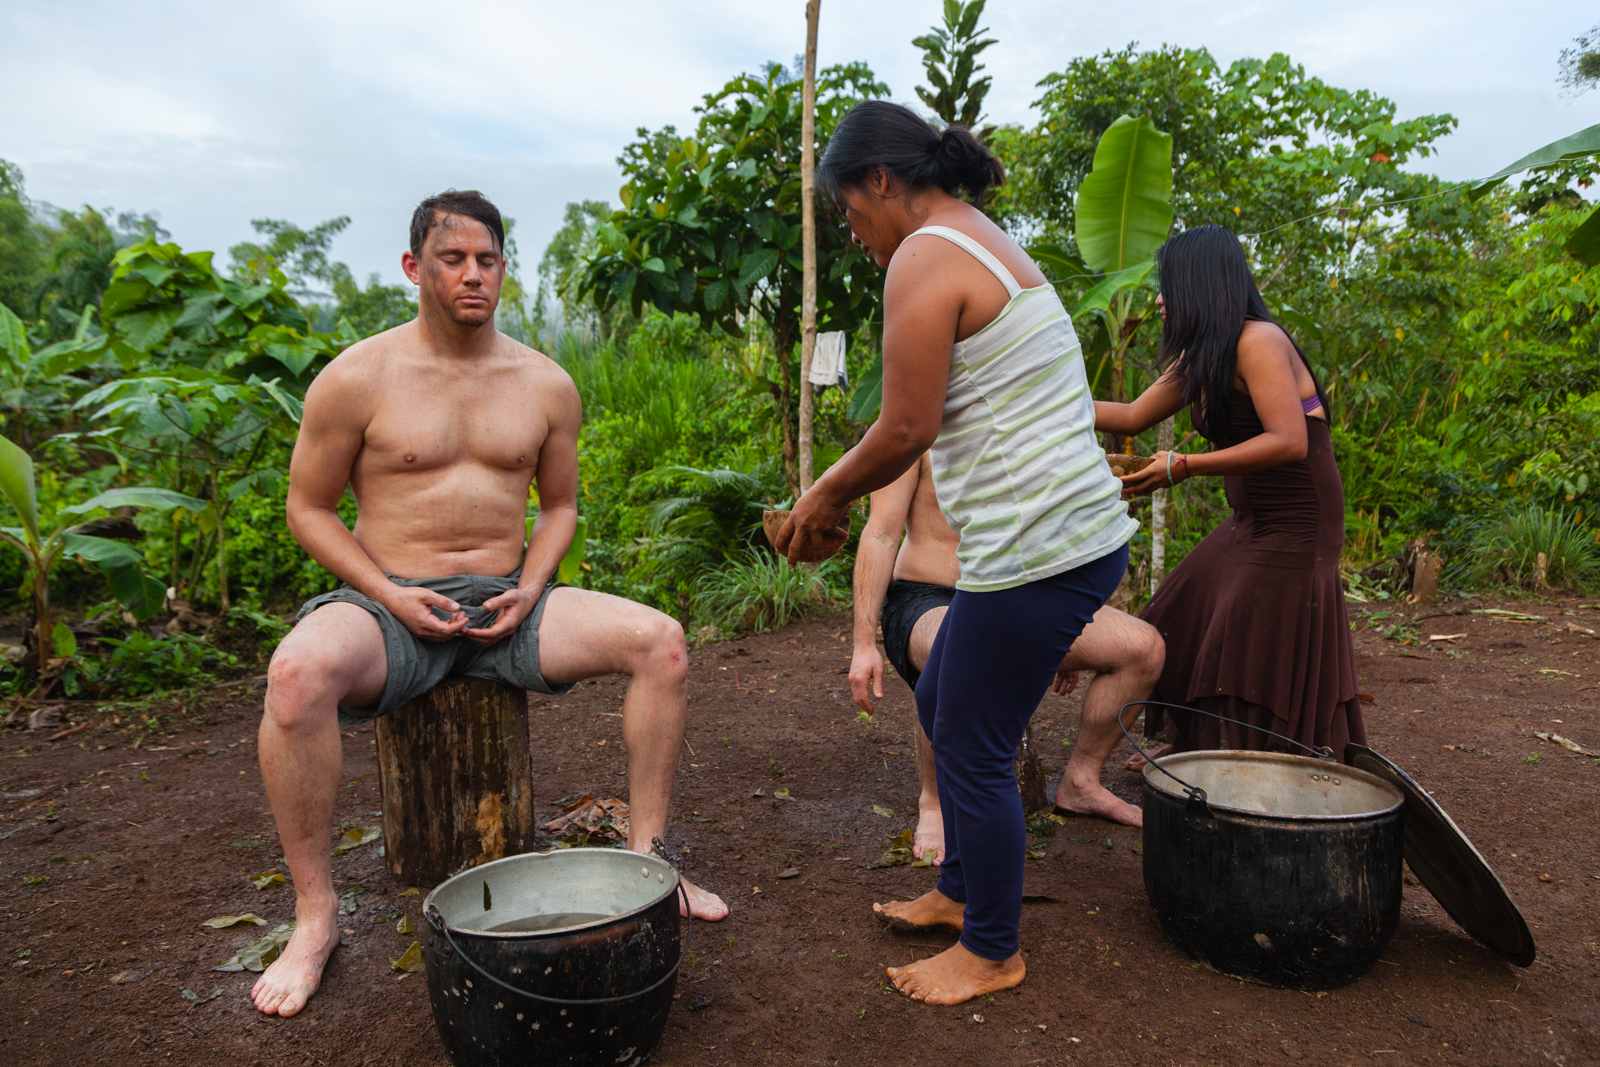 Channing Tatum gets bathed in guayusa leaves.  Credit: Andy Isaacson